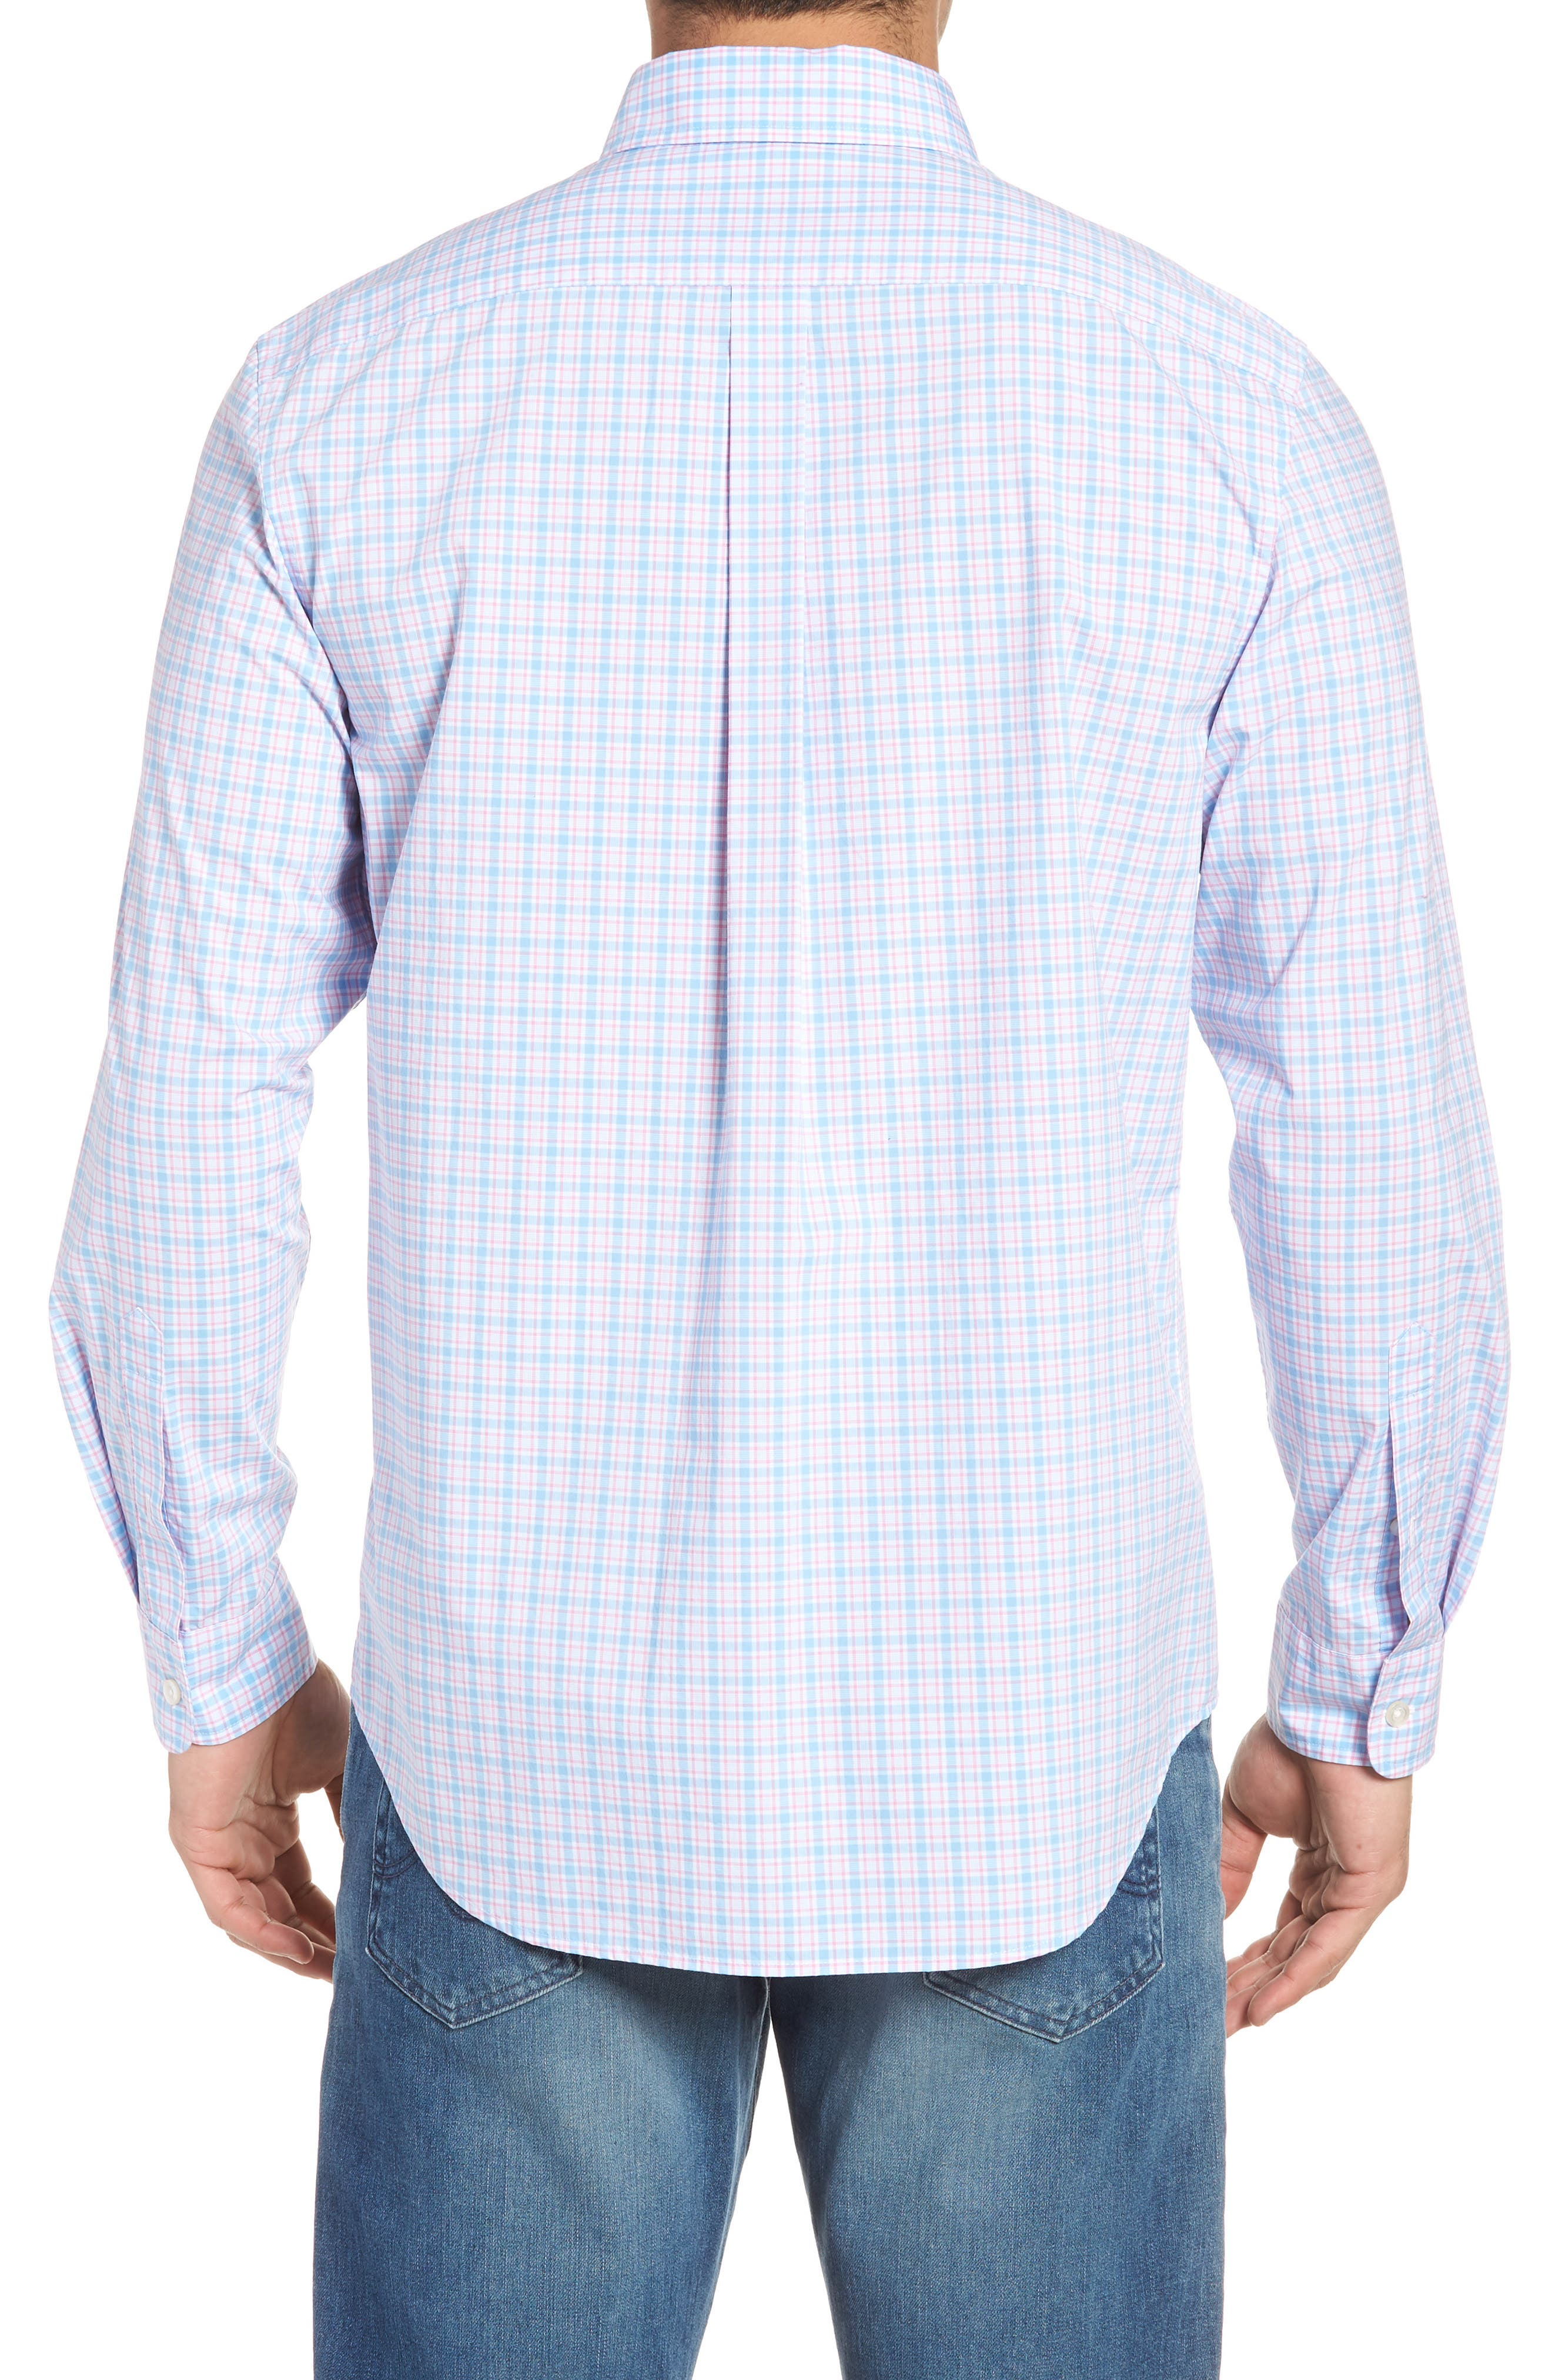 Captain Lyford Classic Fit Stretch Check Sport Shirt,                             Alternate thumbnail 2, color,